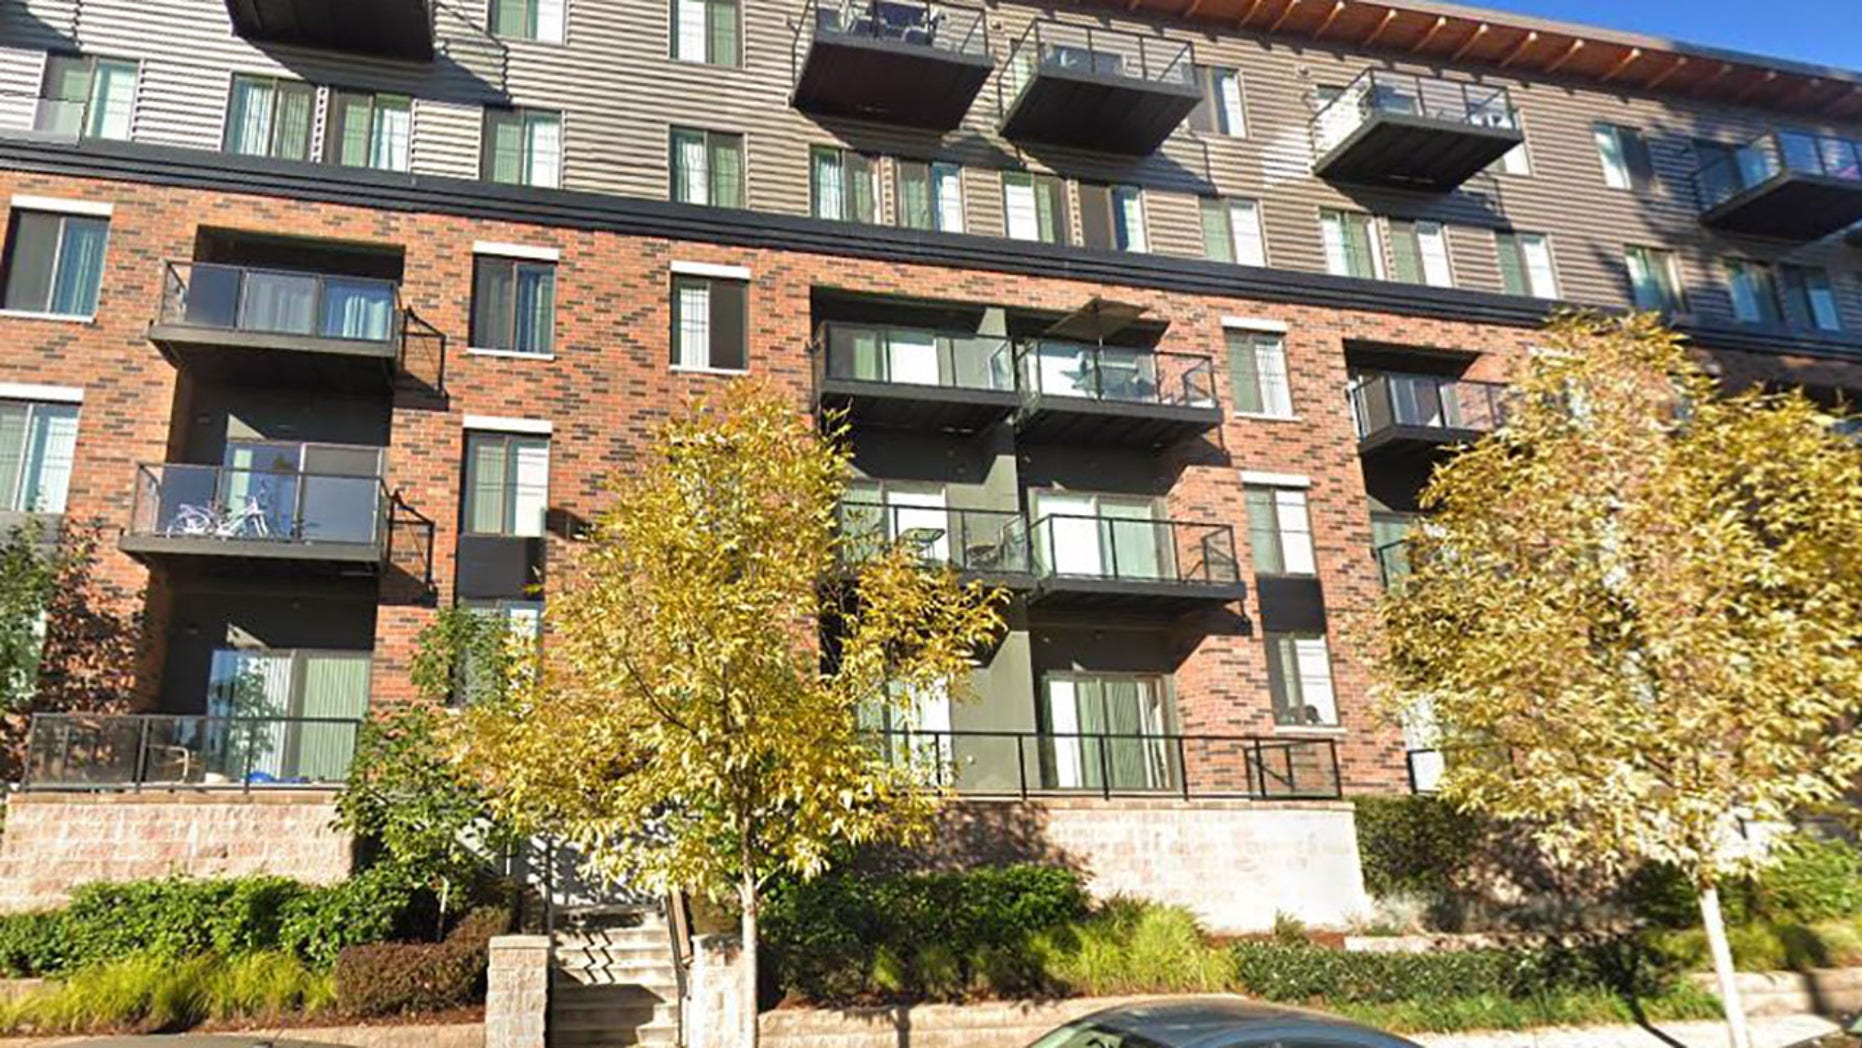 The little boy fell from the top floor of this Redmond apartment building Wednesday.